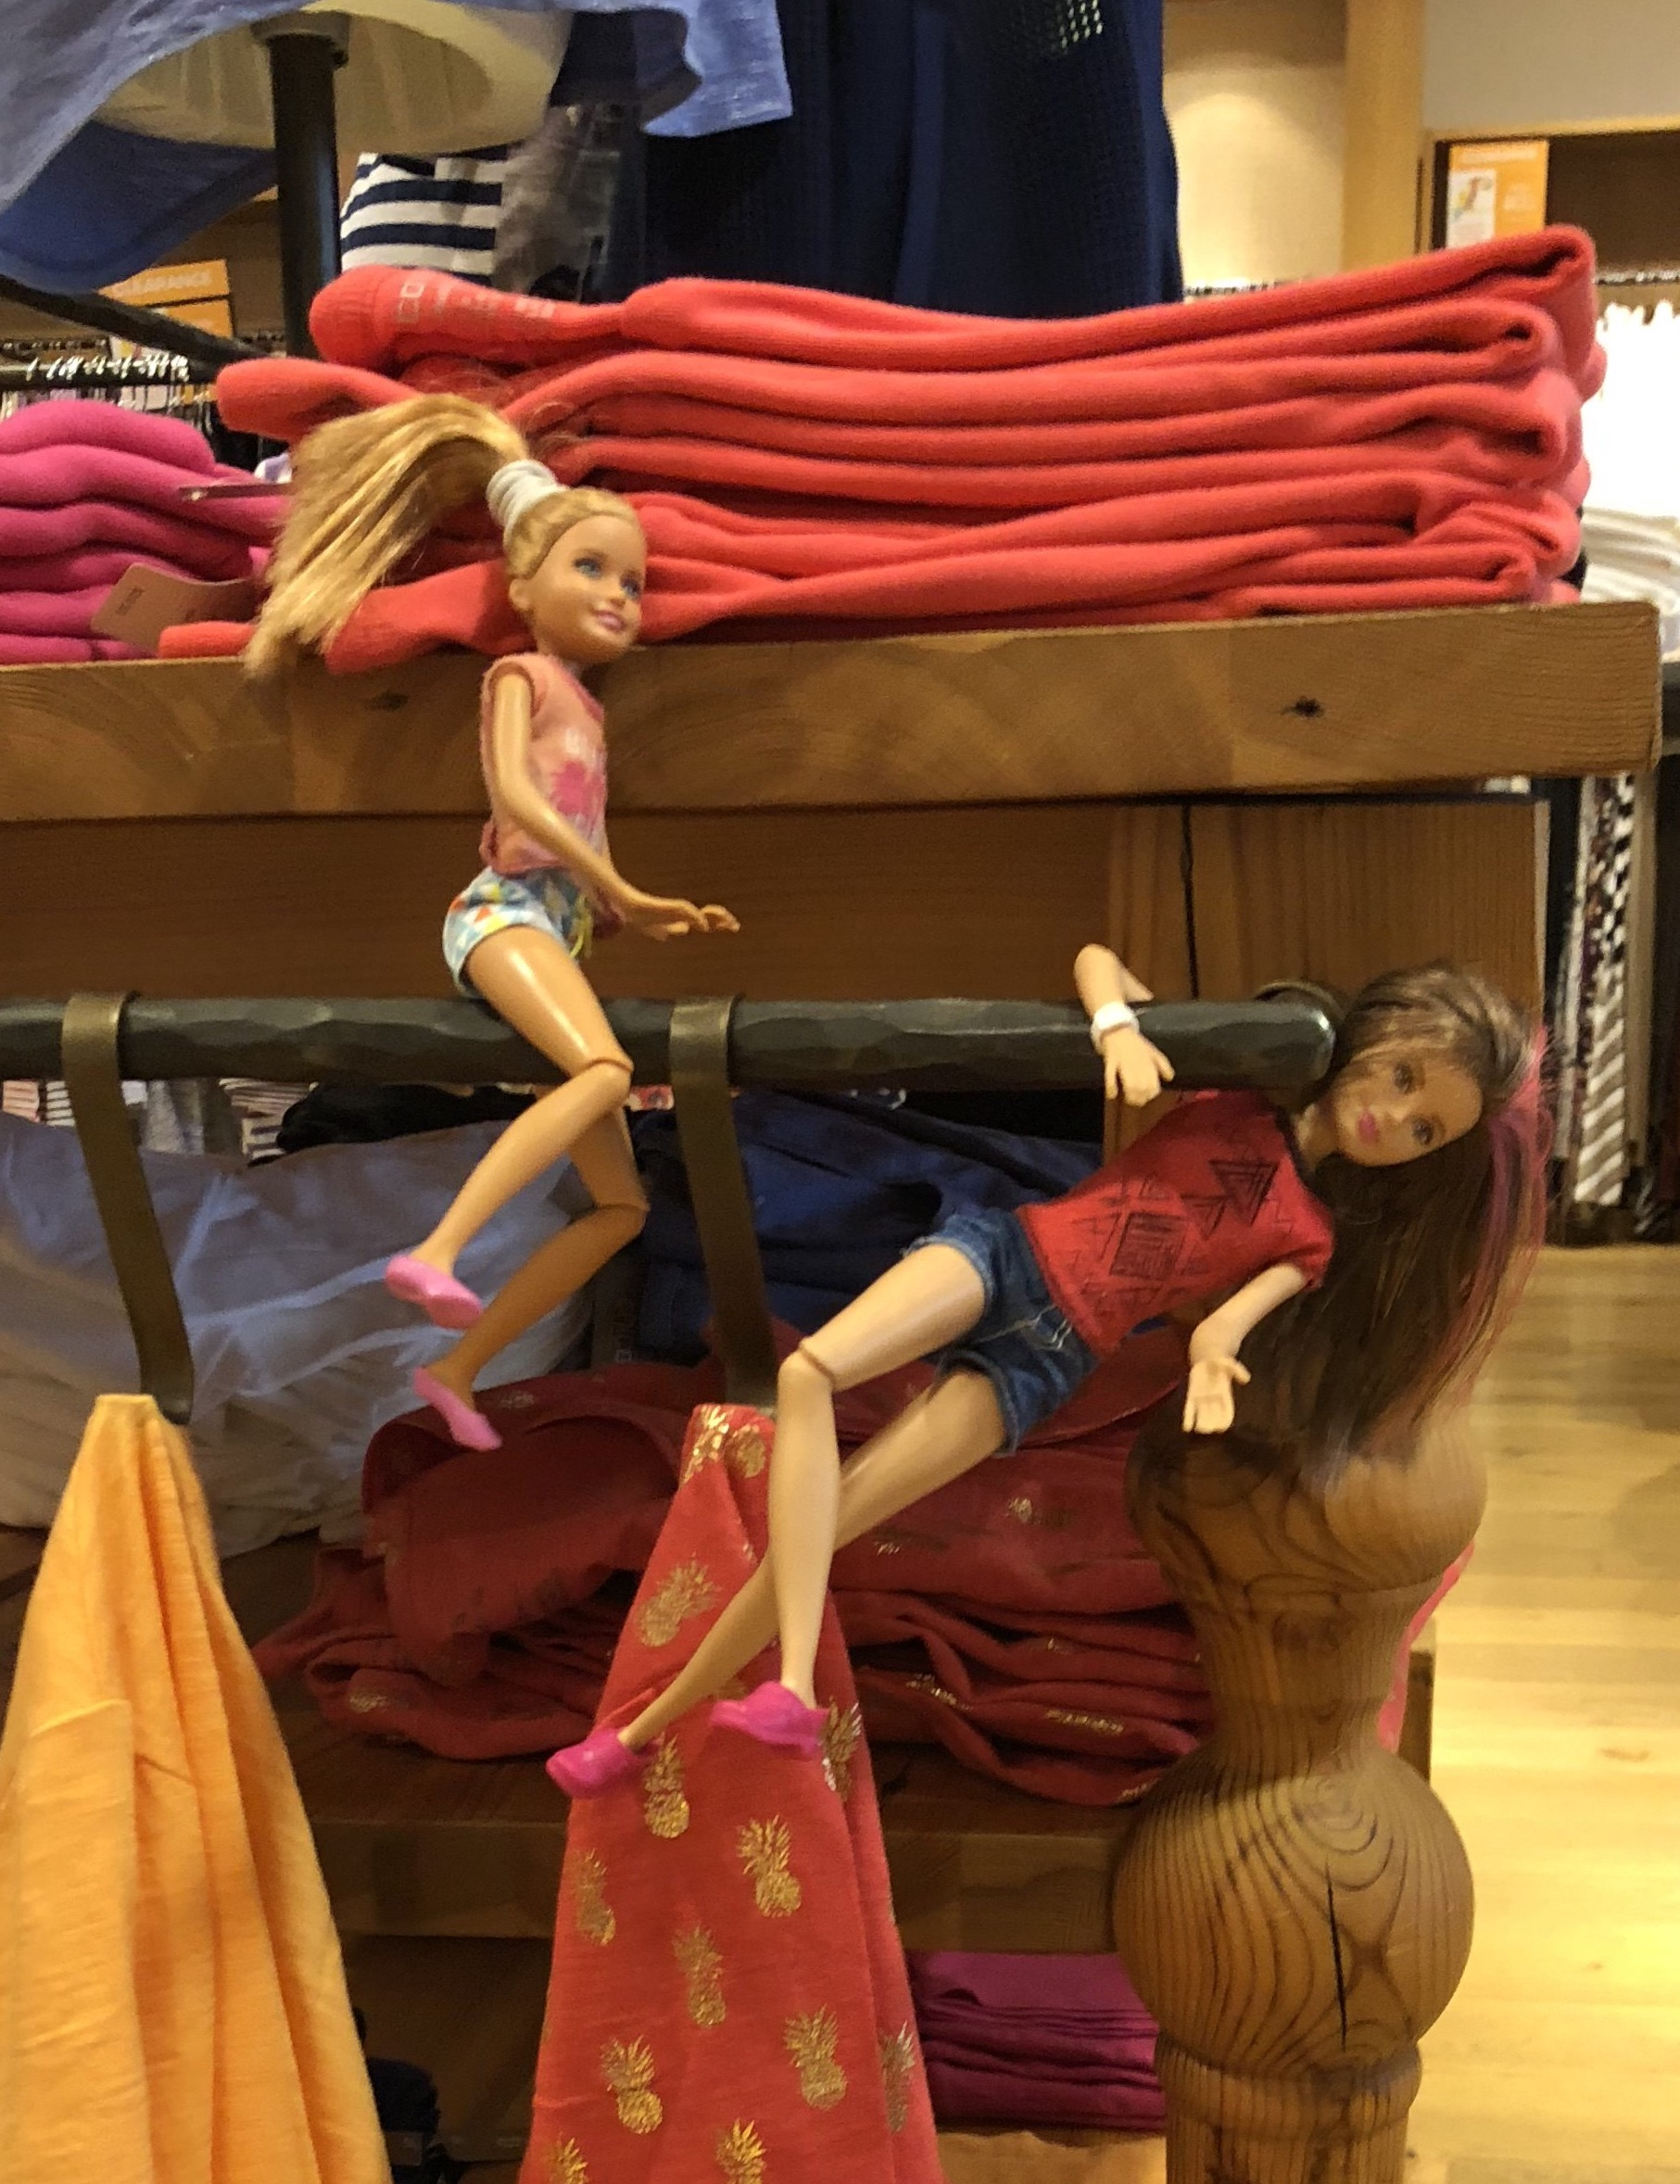 2 Barbie Dolls hanging on some hooks in a clothing store for the Barbie Doll Story, Shopping Fails.